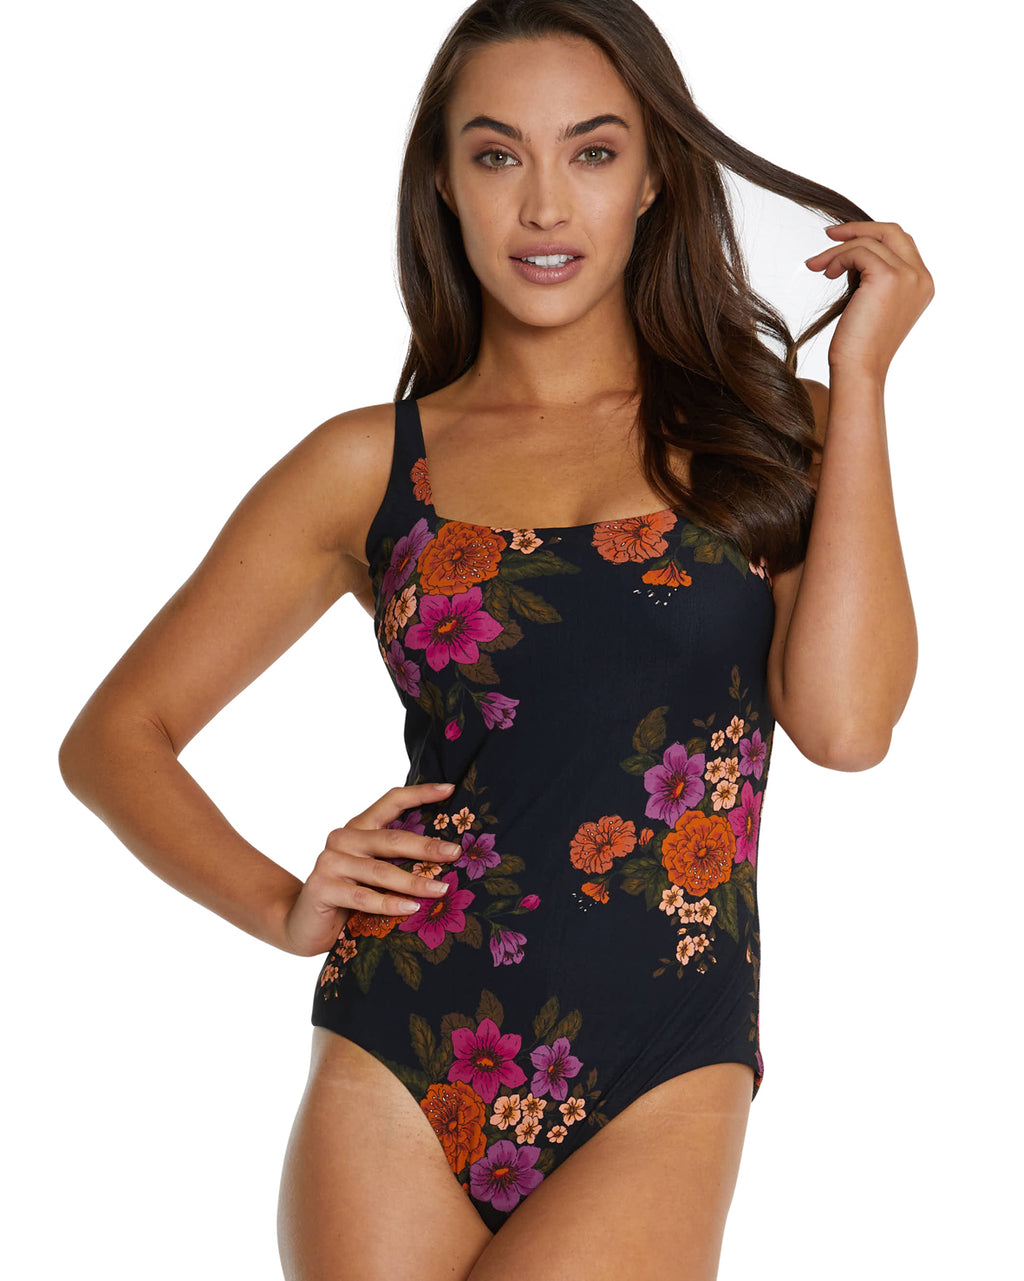 SOMERSET D-E UNDERWIRE SQUARE ONE PIECE SWIMSUIT